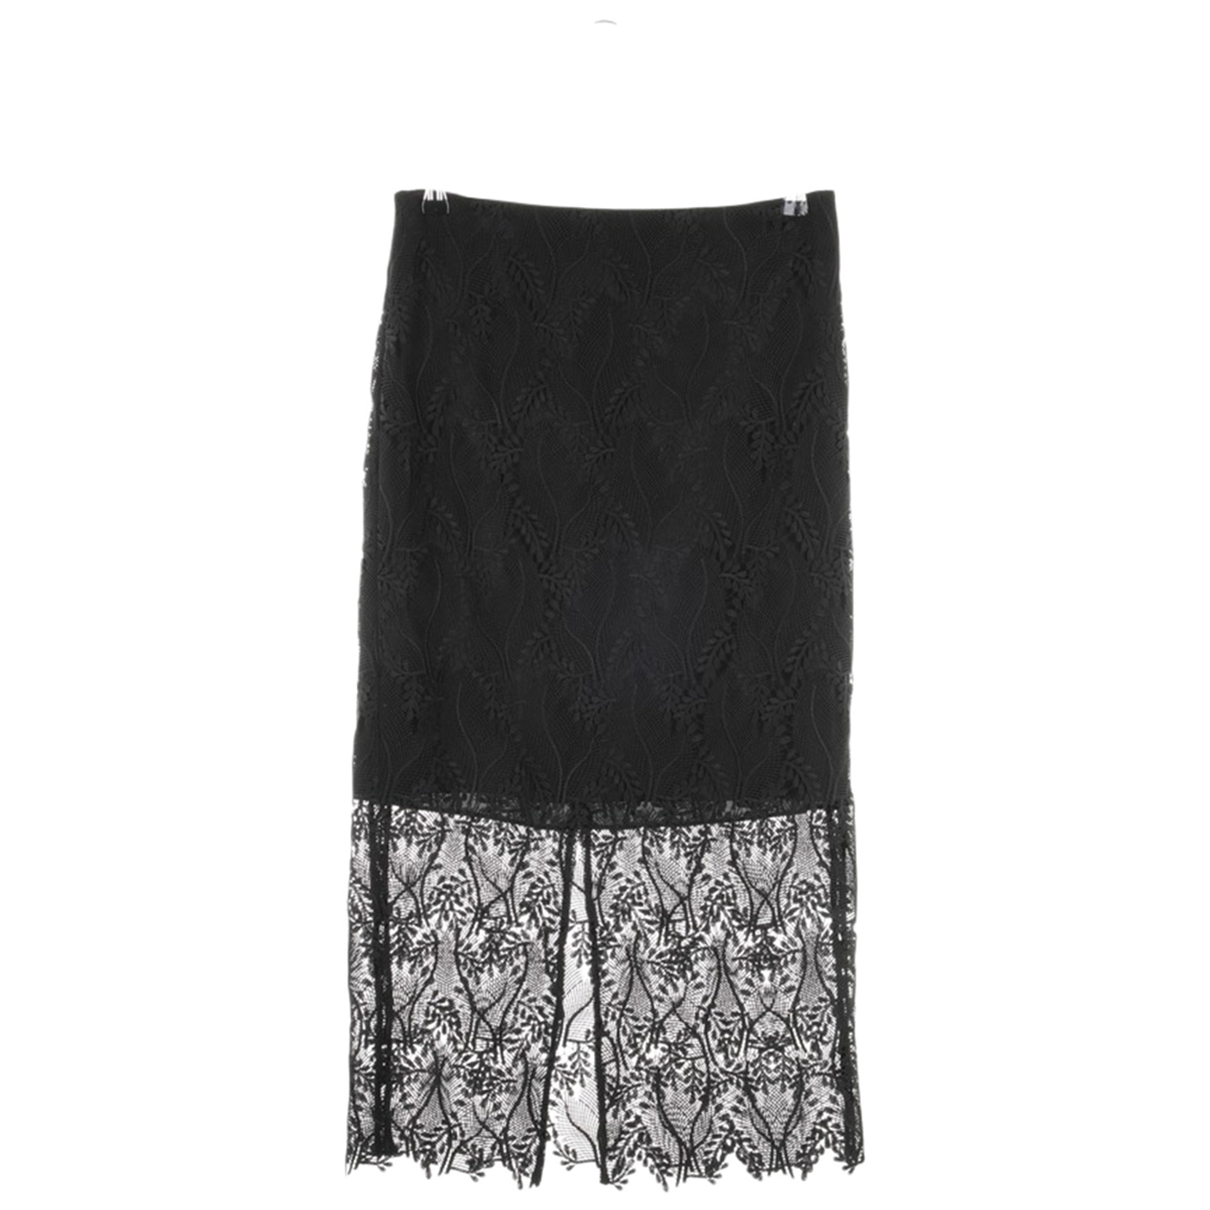 Diane Von Furstenberg N Black skirt for Women 38 IT